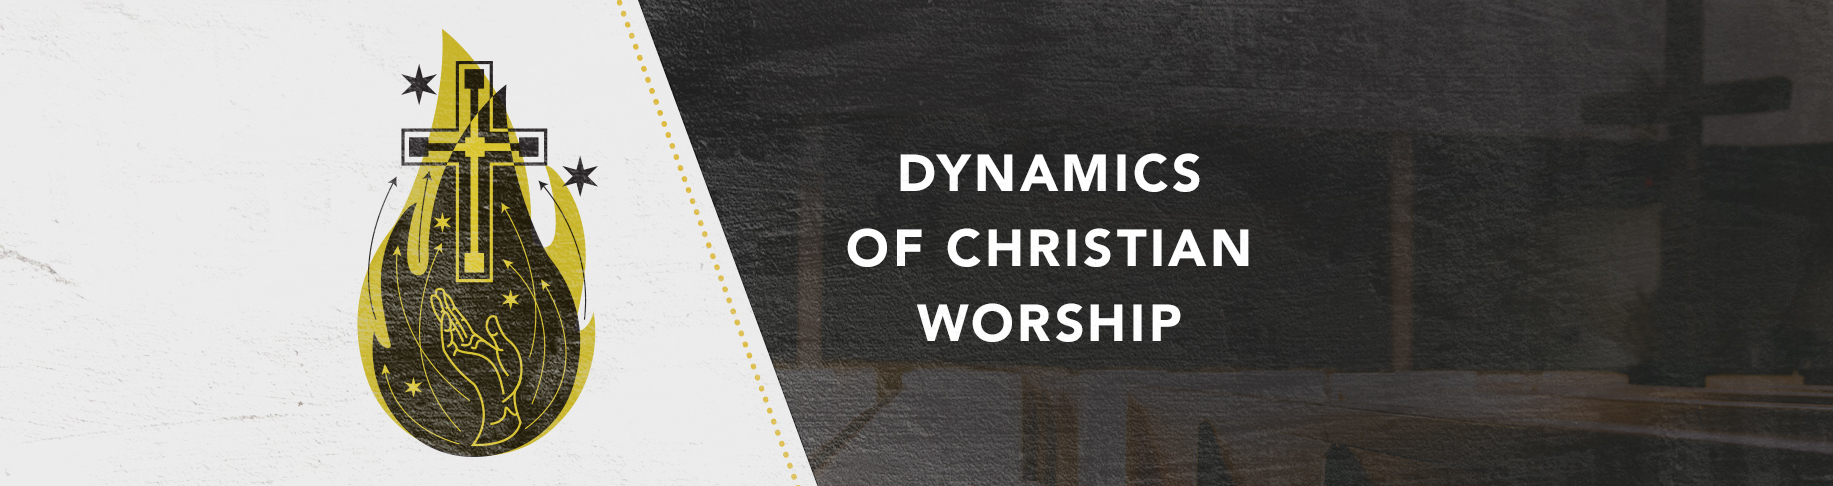 Dynamics of Christian Worship